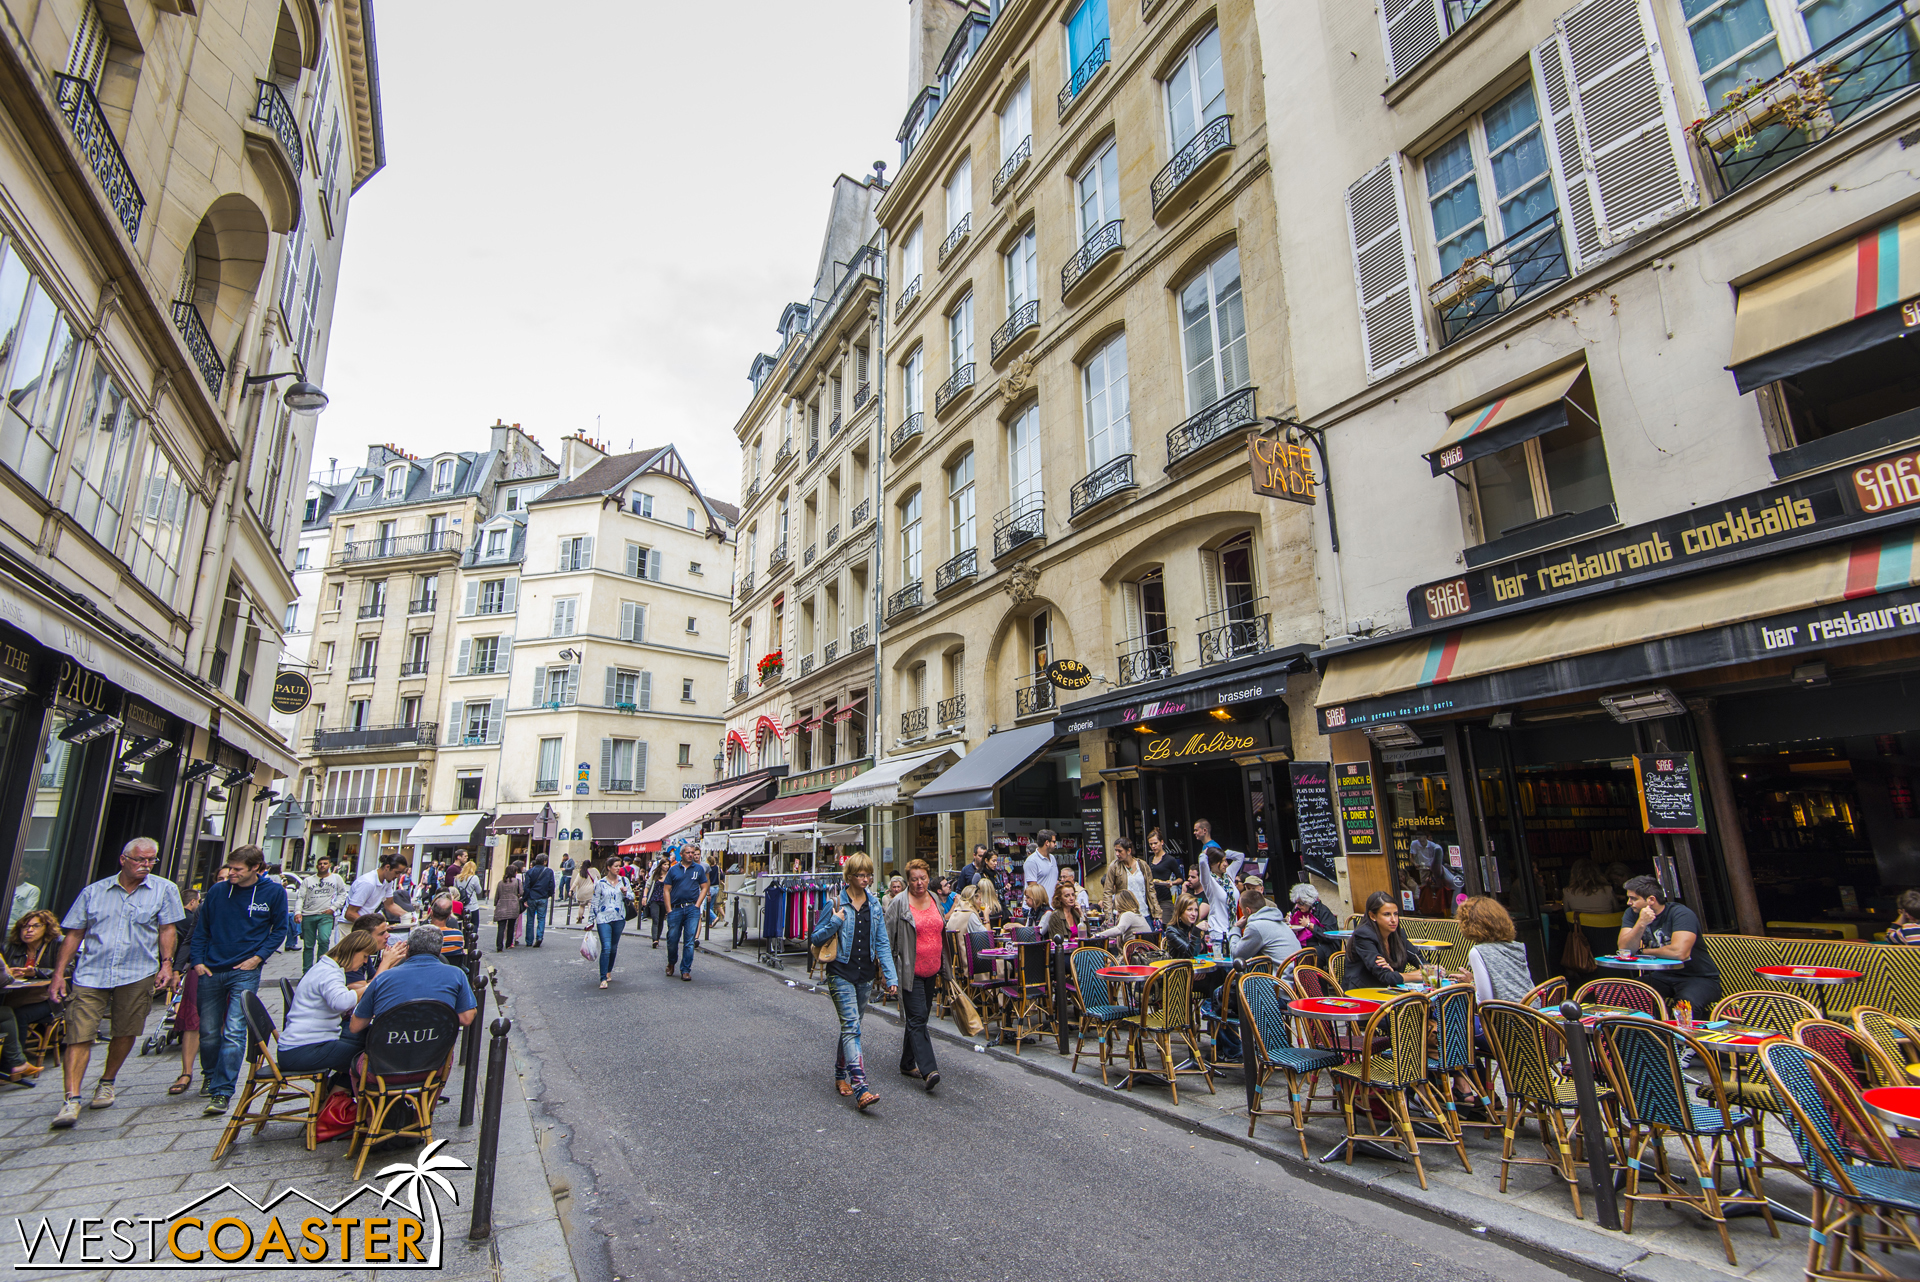 The Latin Quarter is full of charming streetside cafes and open air markets and a great place to catch the bohemian essence of the city.